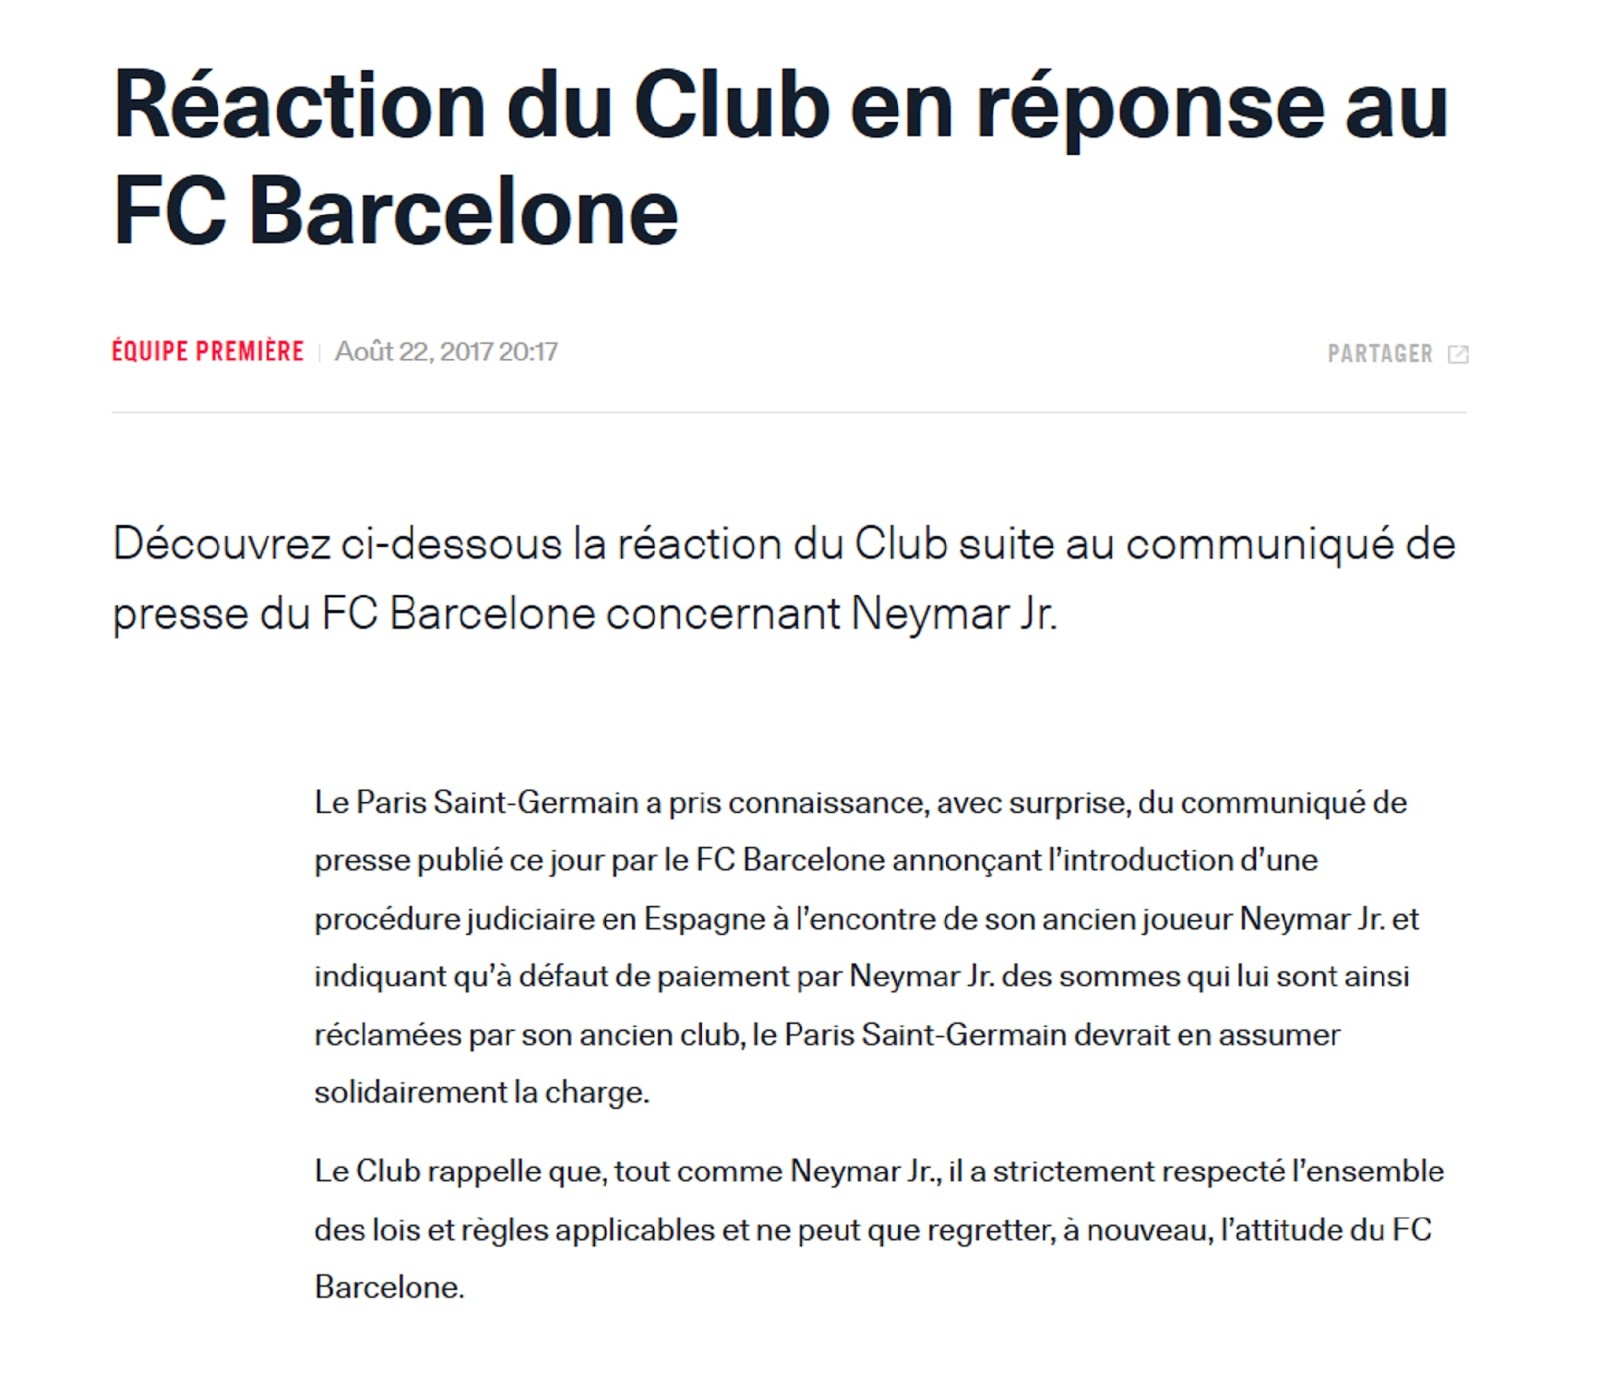 PARIS SAINT-GERMAIN FC STATEMENT